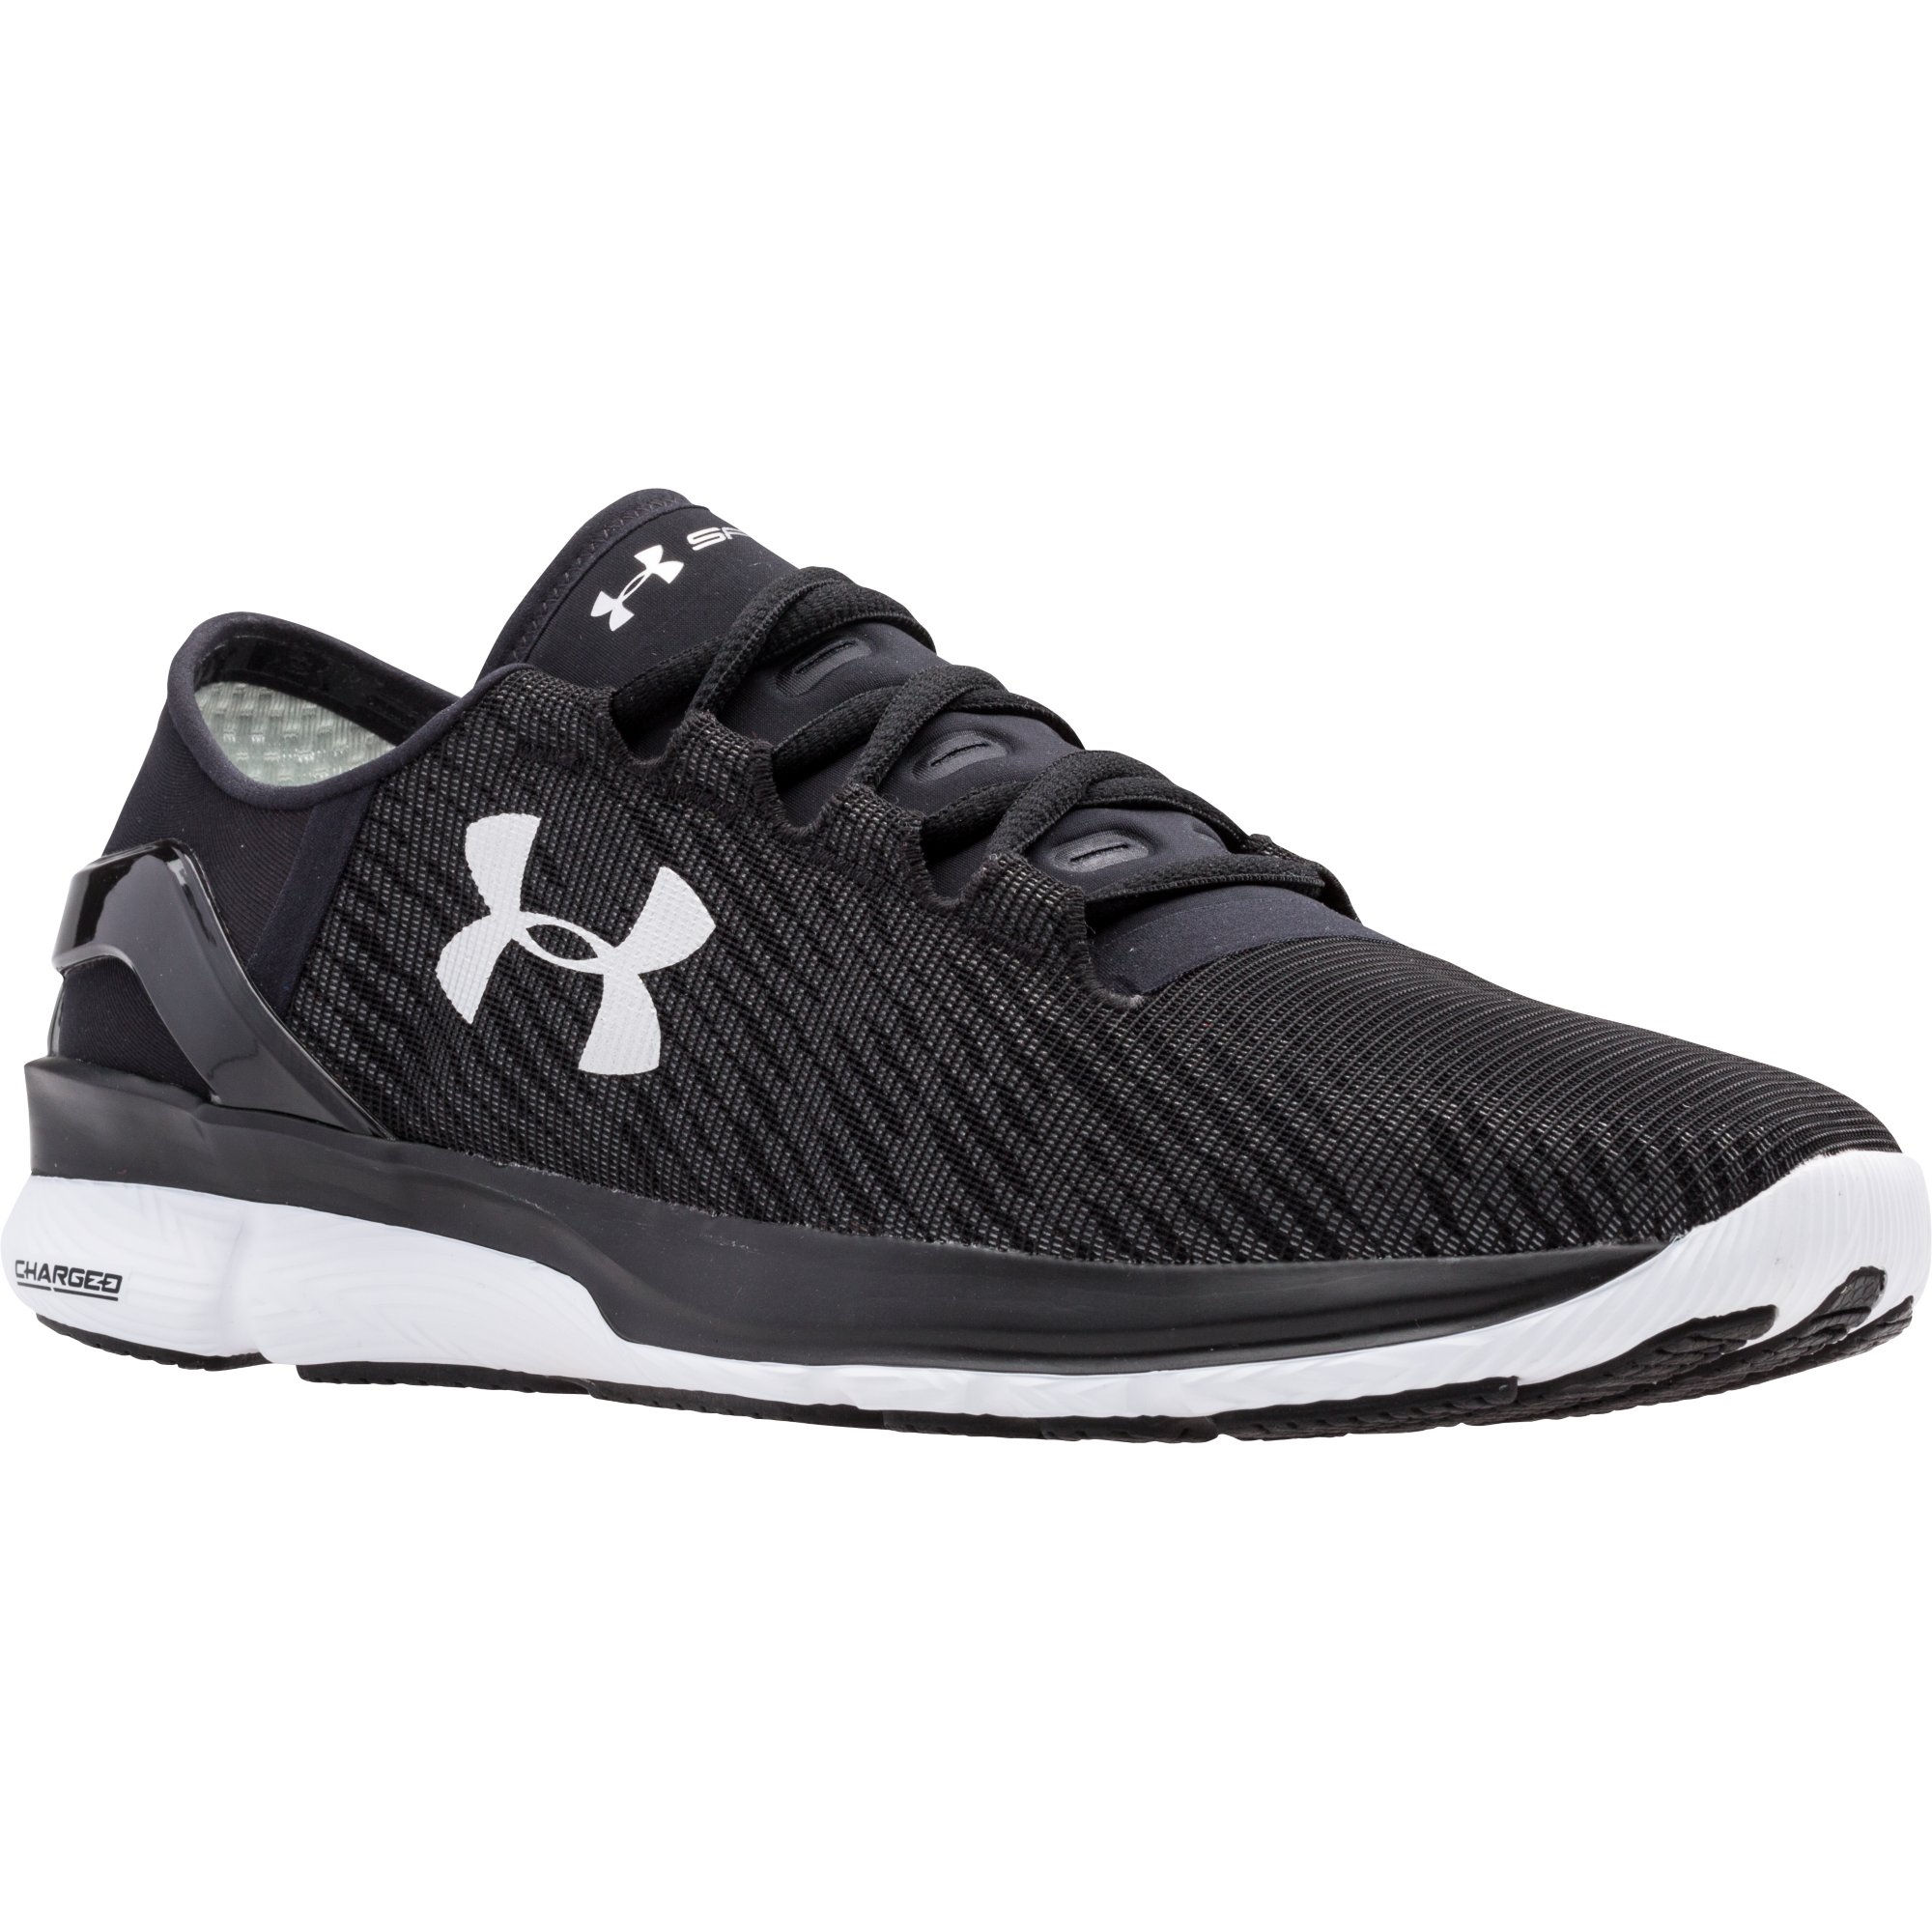 Under Armour Shoes France